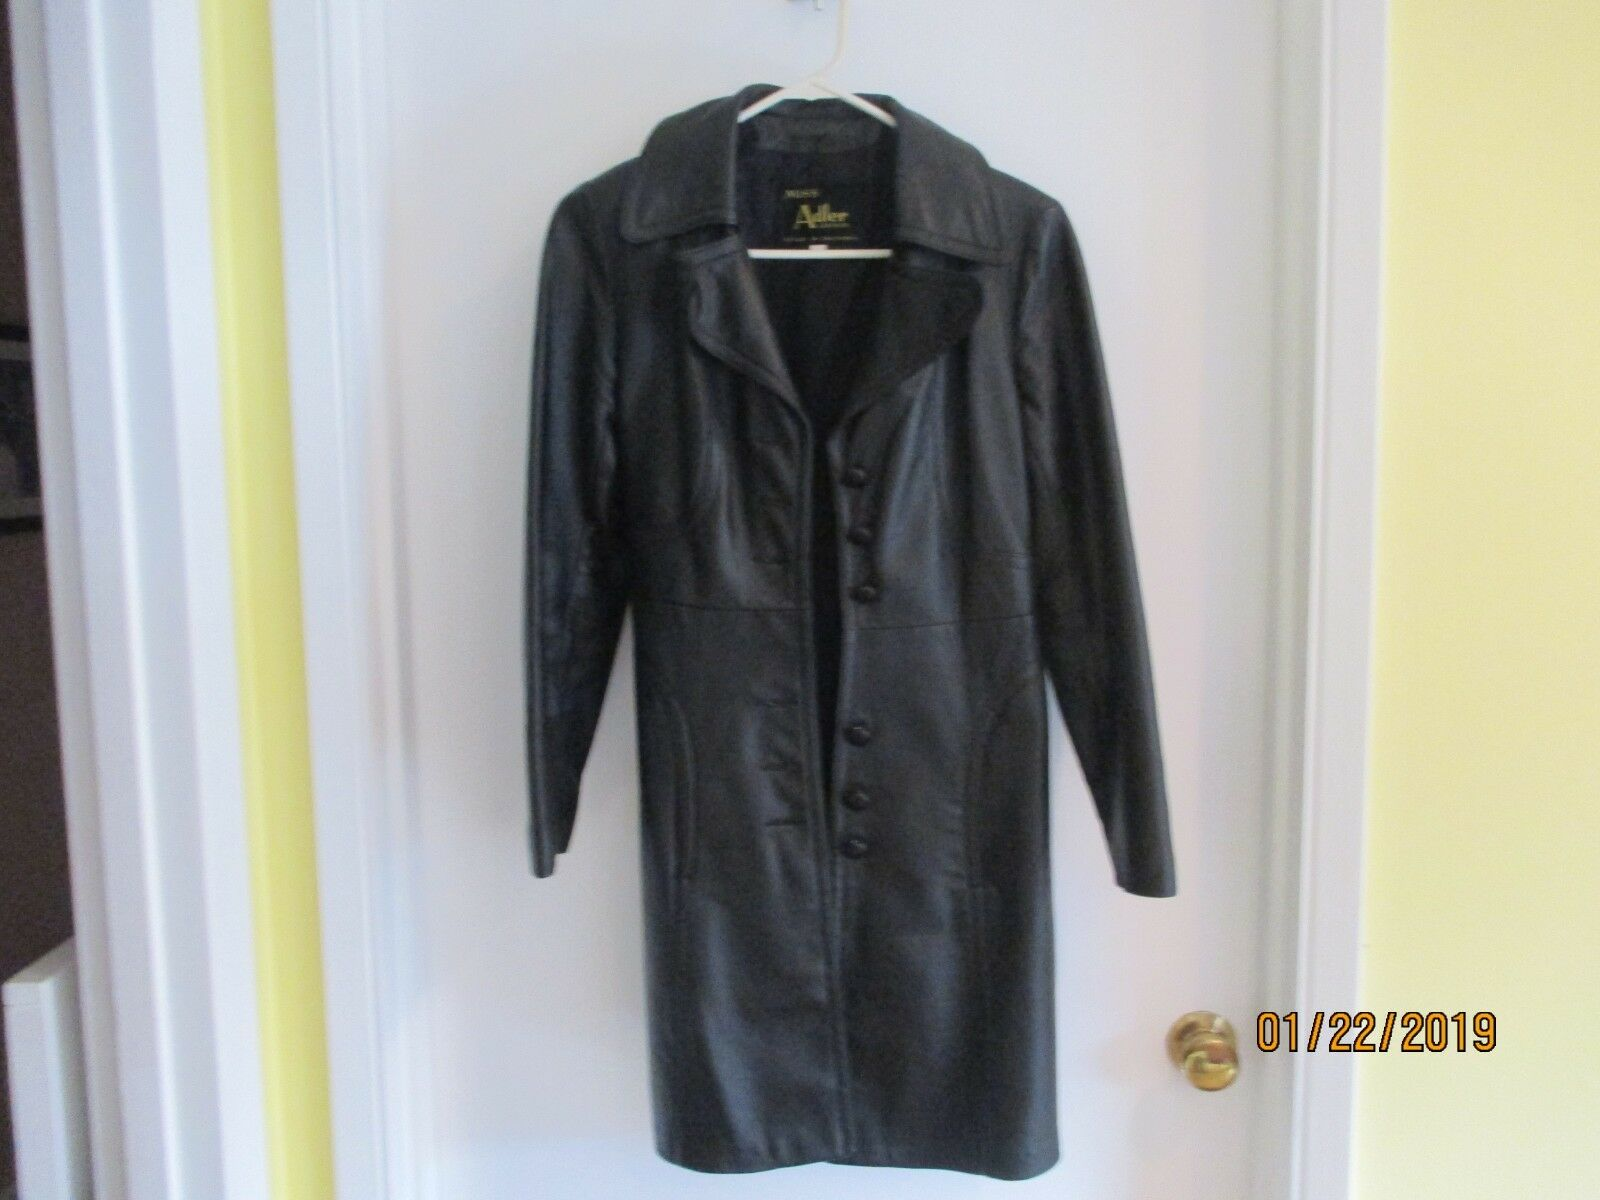 ADLER COLLECTION LADIES LEATHER COAT W BELT -SIZE 10 - EXCELLENT - FREE SHIPPING